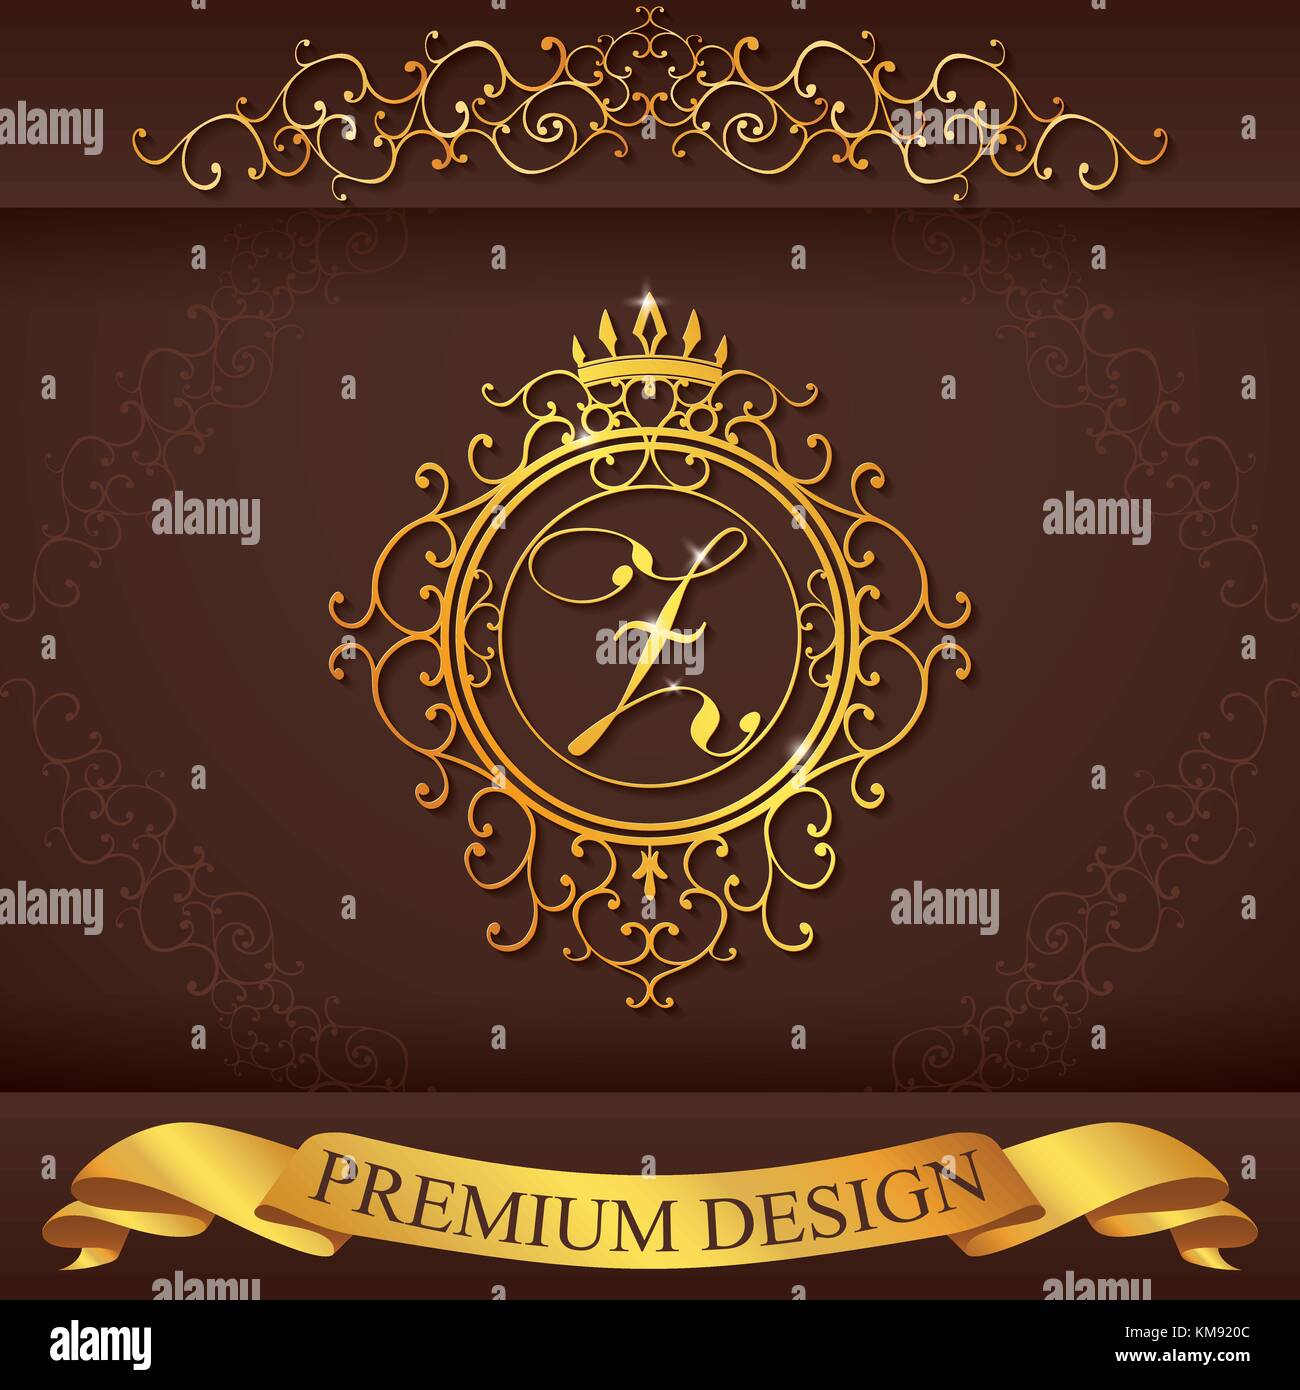 Letter z luxury logo template flourishes calligraphic elegant stock letter z luxury logo template flourishes calligraphic elegant ornament lines business sign identity for restaurant royalty boutique hotel heral wajeb Images